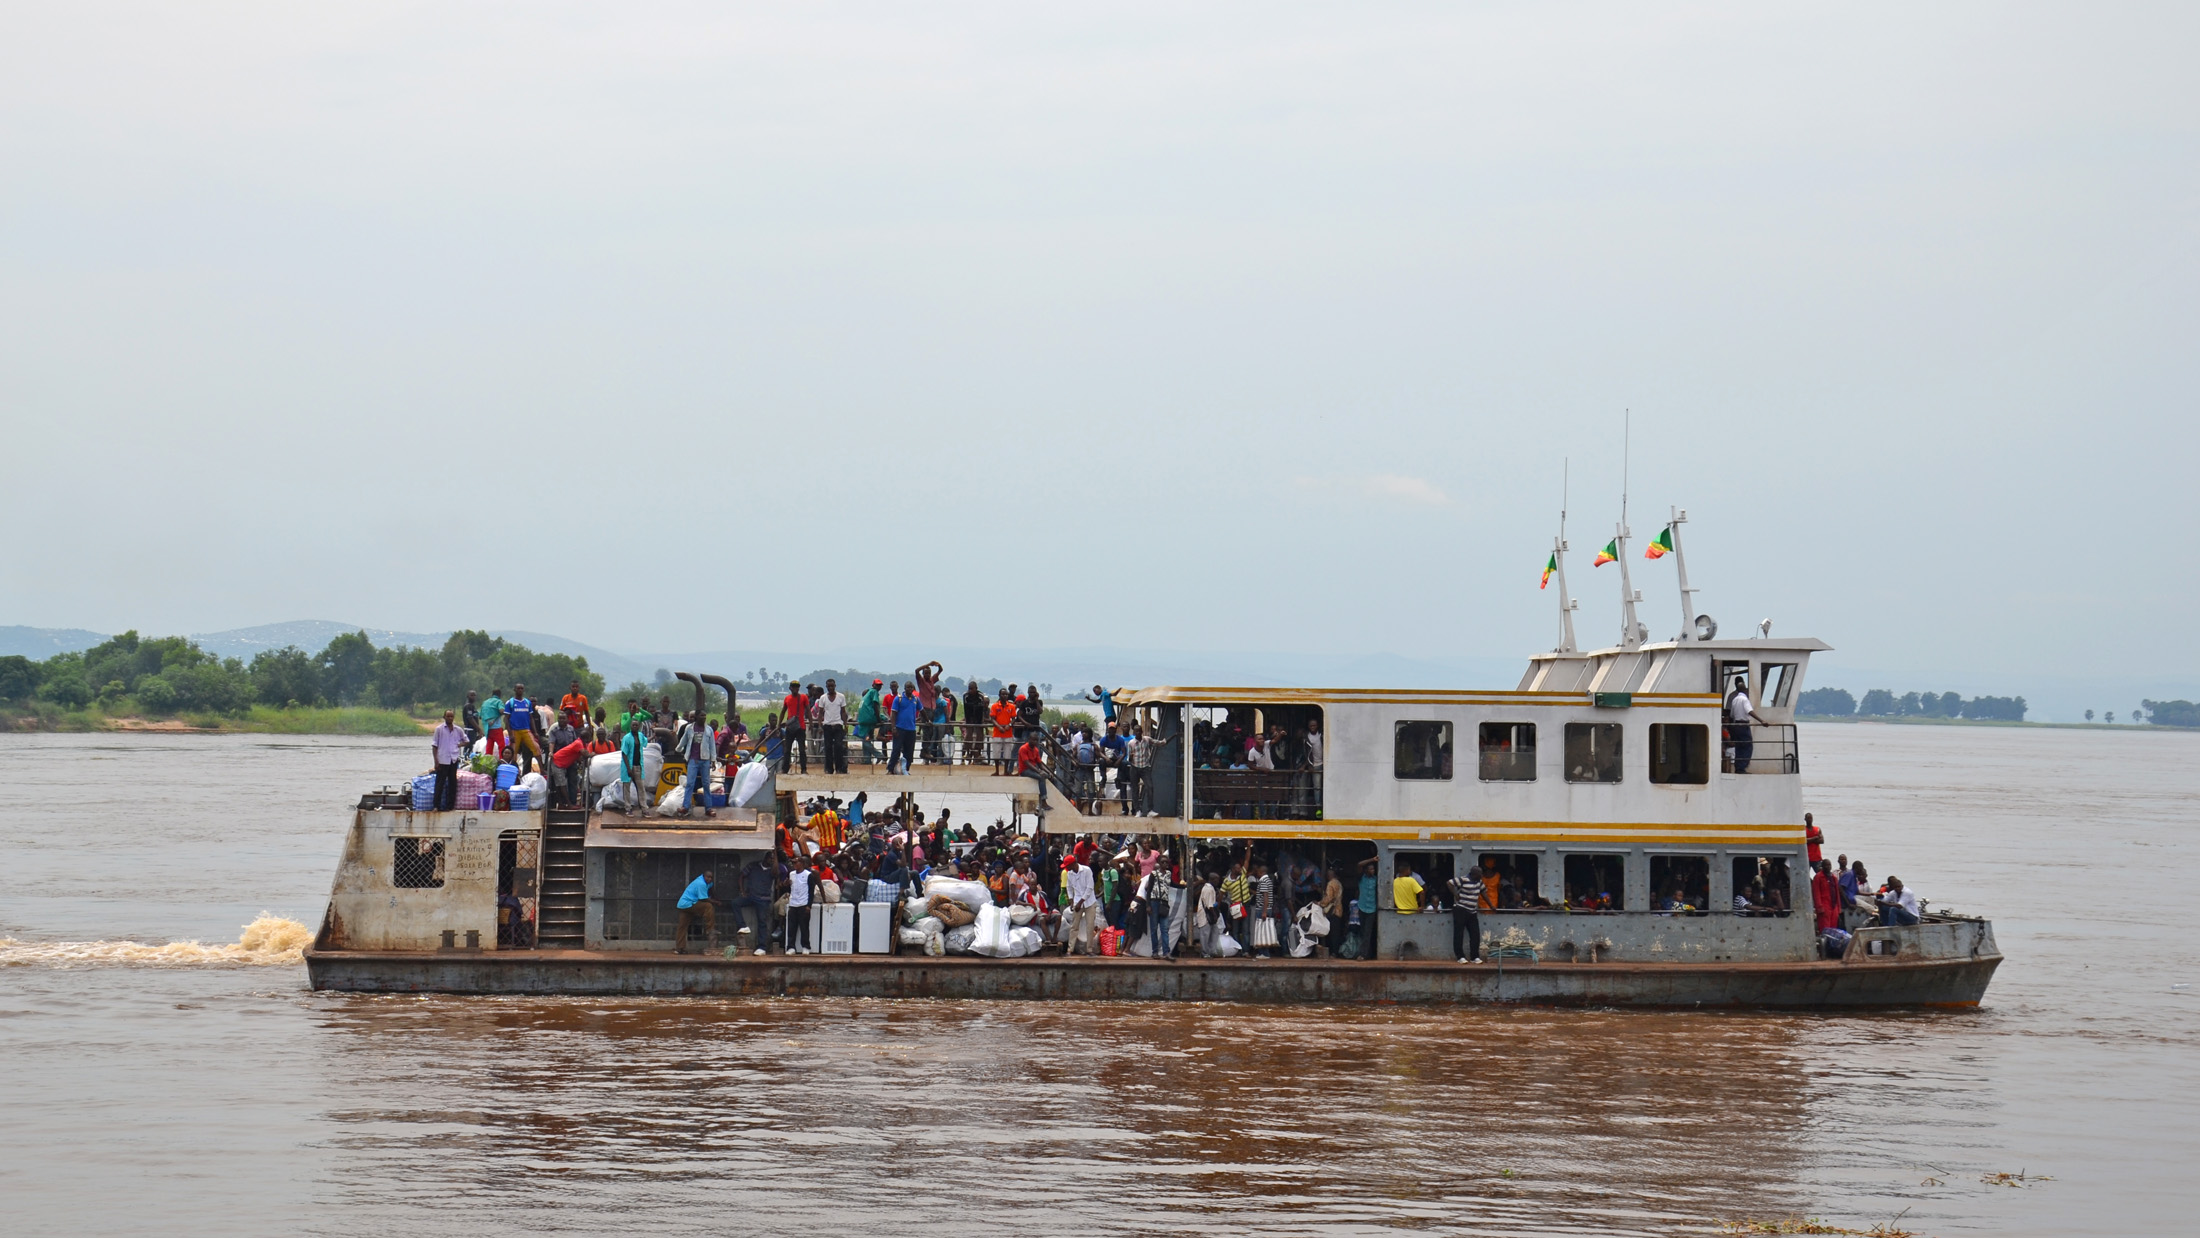 A Congo-Brazzaville boat bringing back Congolese who were deported or had fled for fear of violent deportation